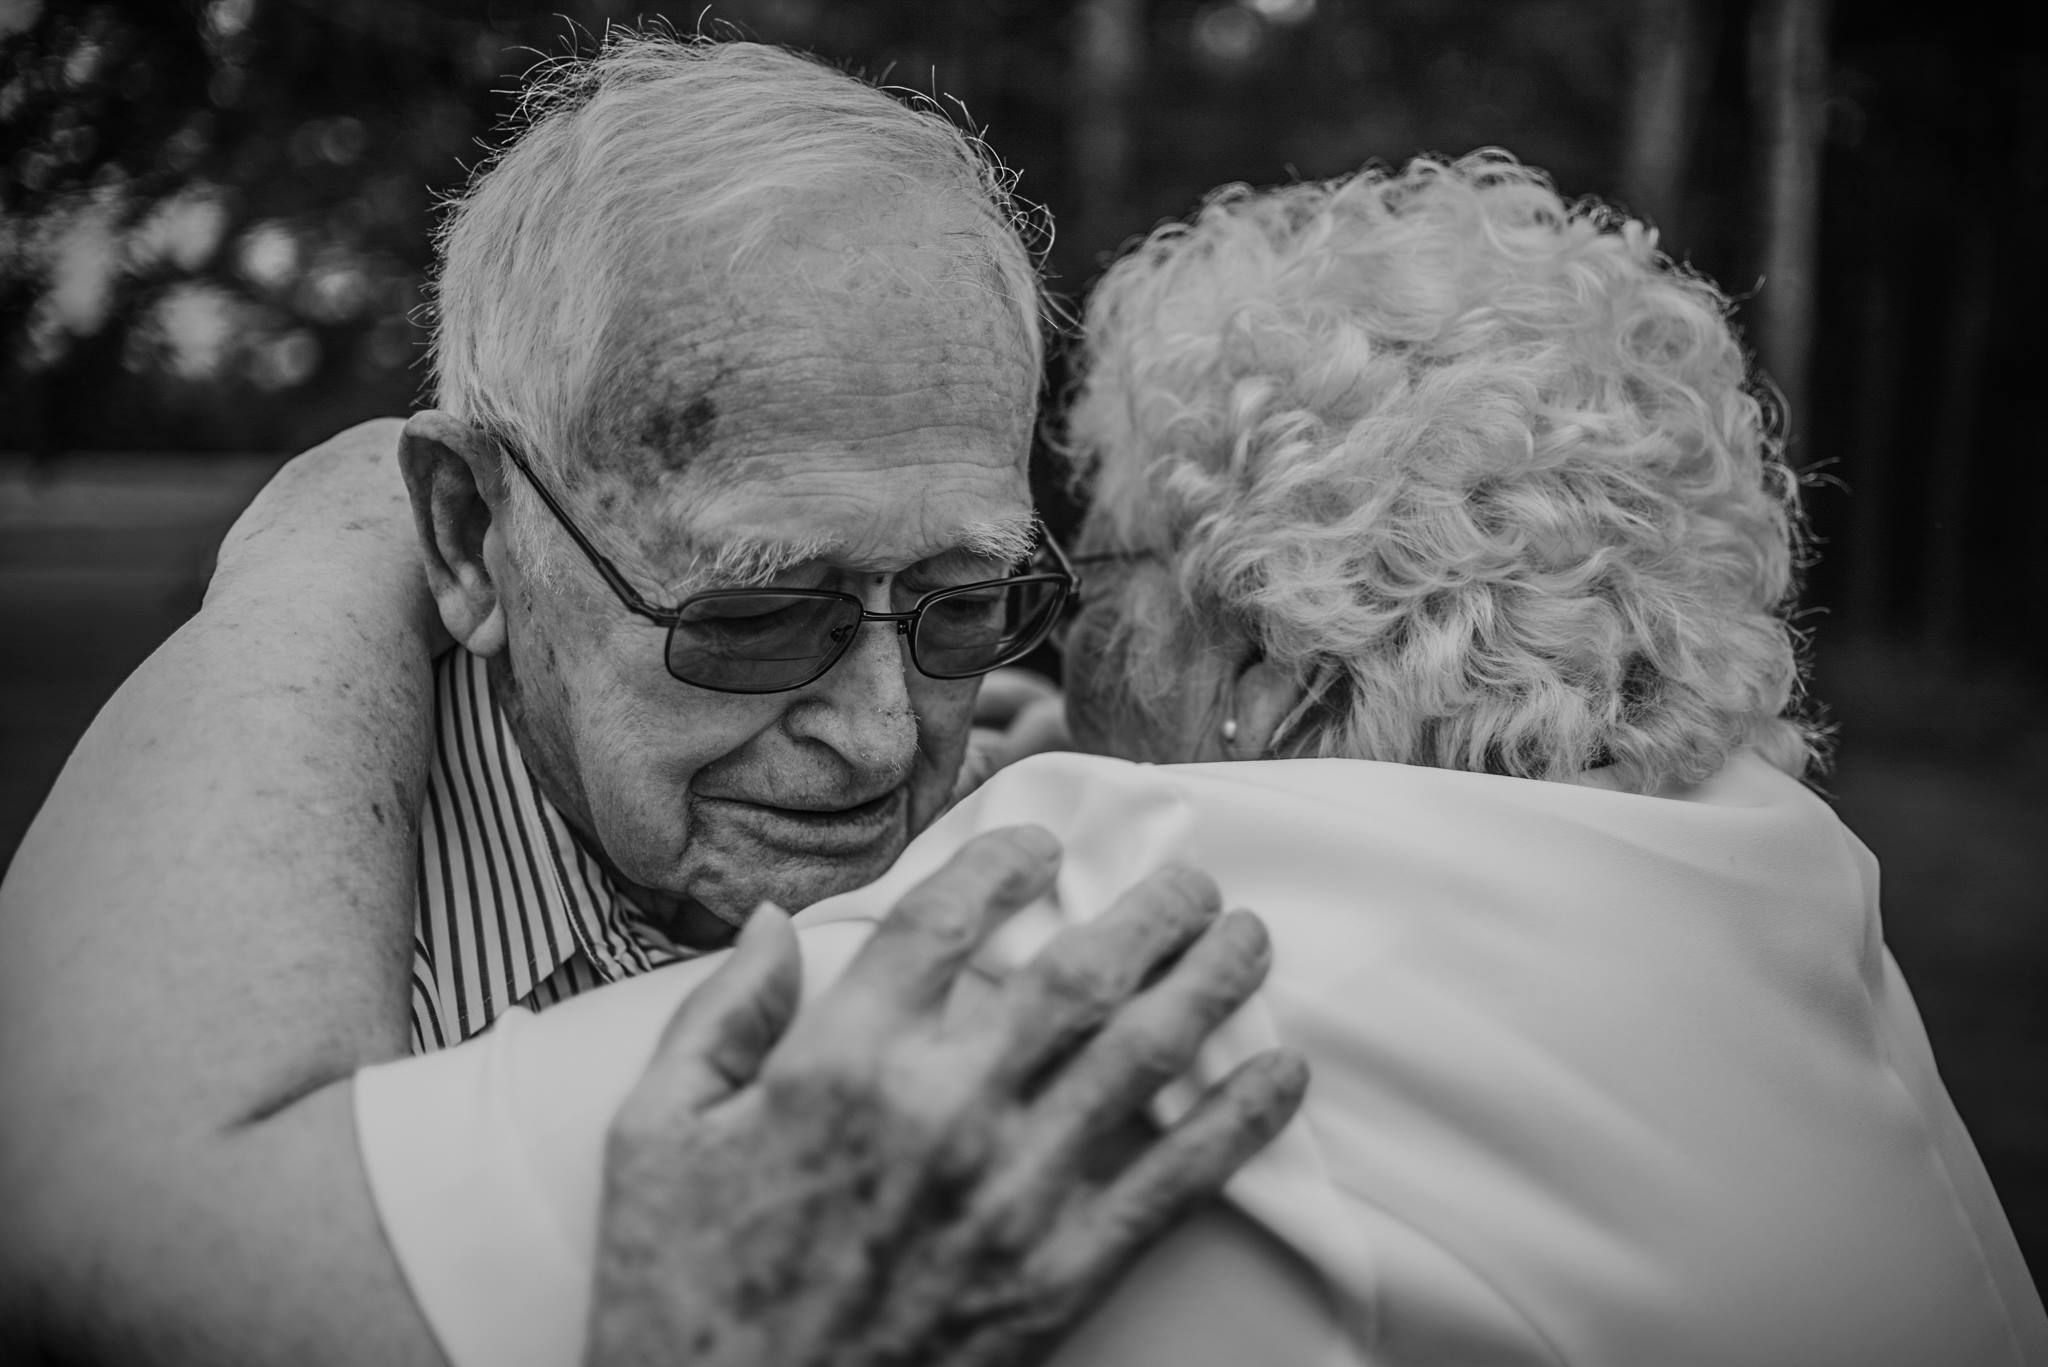 3. In love? - Whether you just fell in love, or you've been married for 63 years, love is beautiful. Time goes by fast and what better way to remember the person you love, than to capture tender moments of you showing each other just how big that love is in front of the camera.